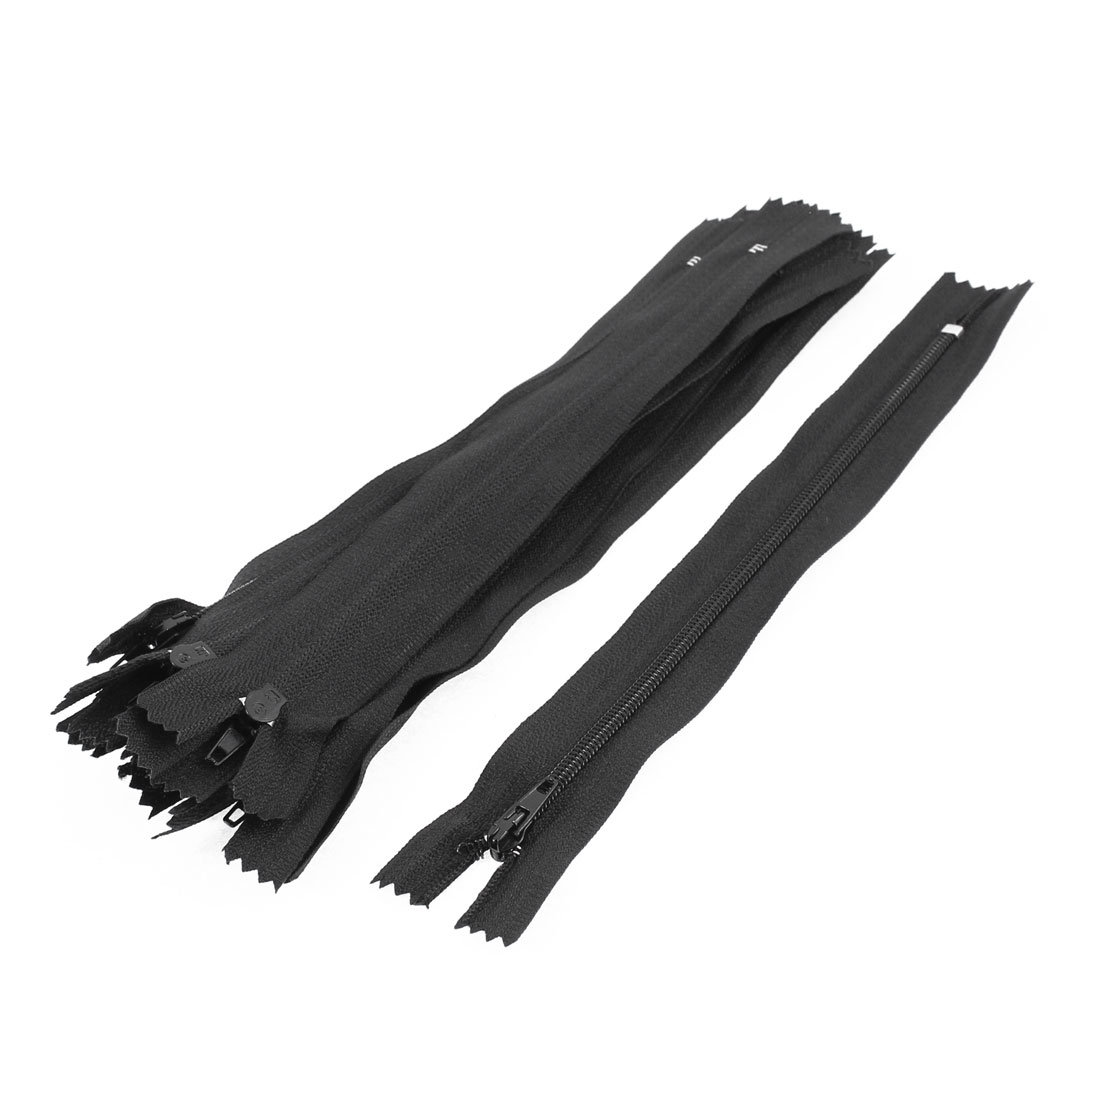 Unique Bargains Dress Pants Closed End Nylon Zippers Tailor Sewing Craft Tool Black 18cm 10 Pcs for Home Essential